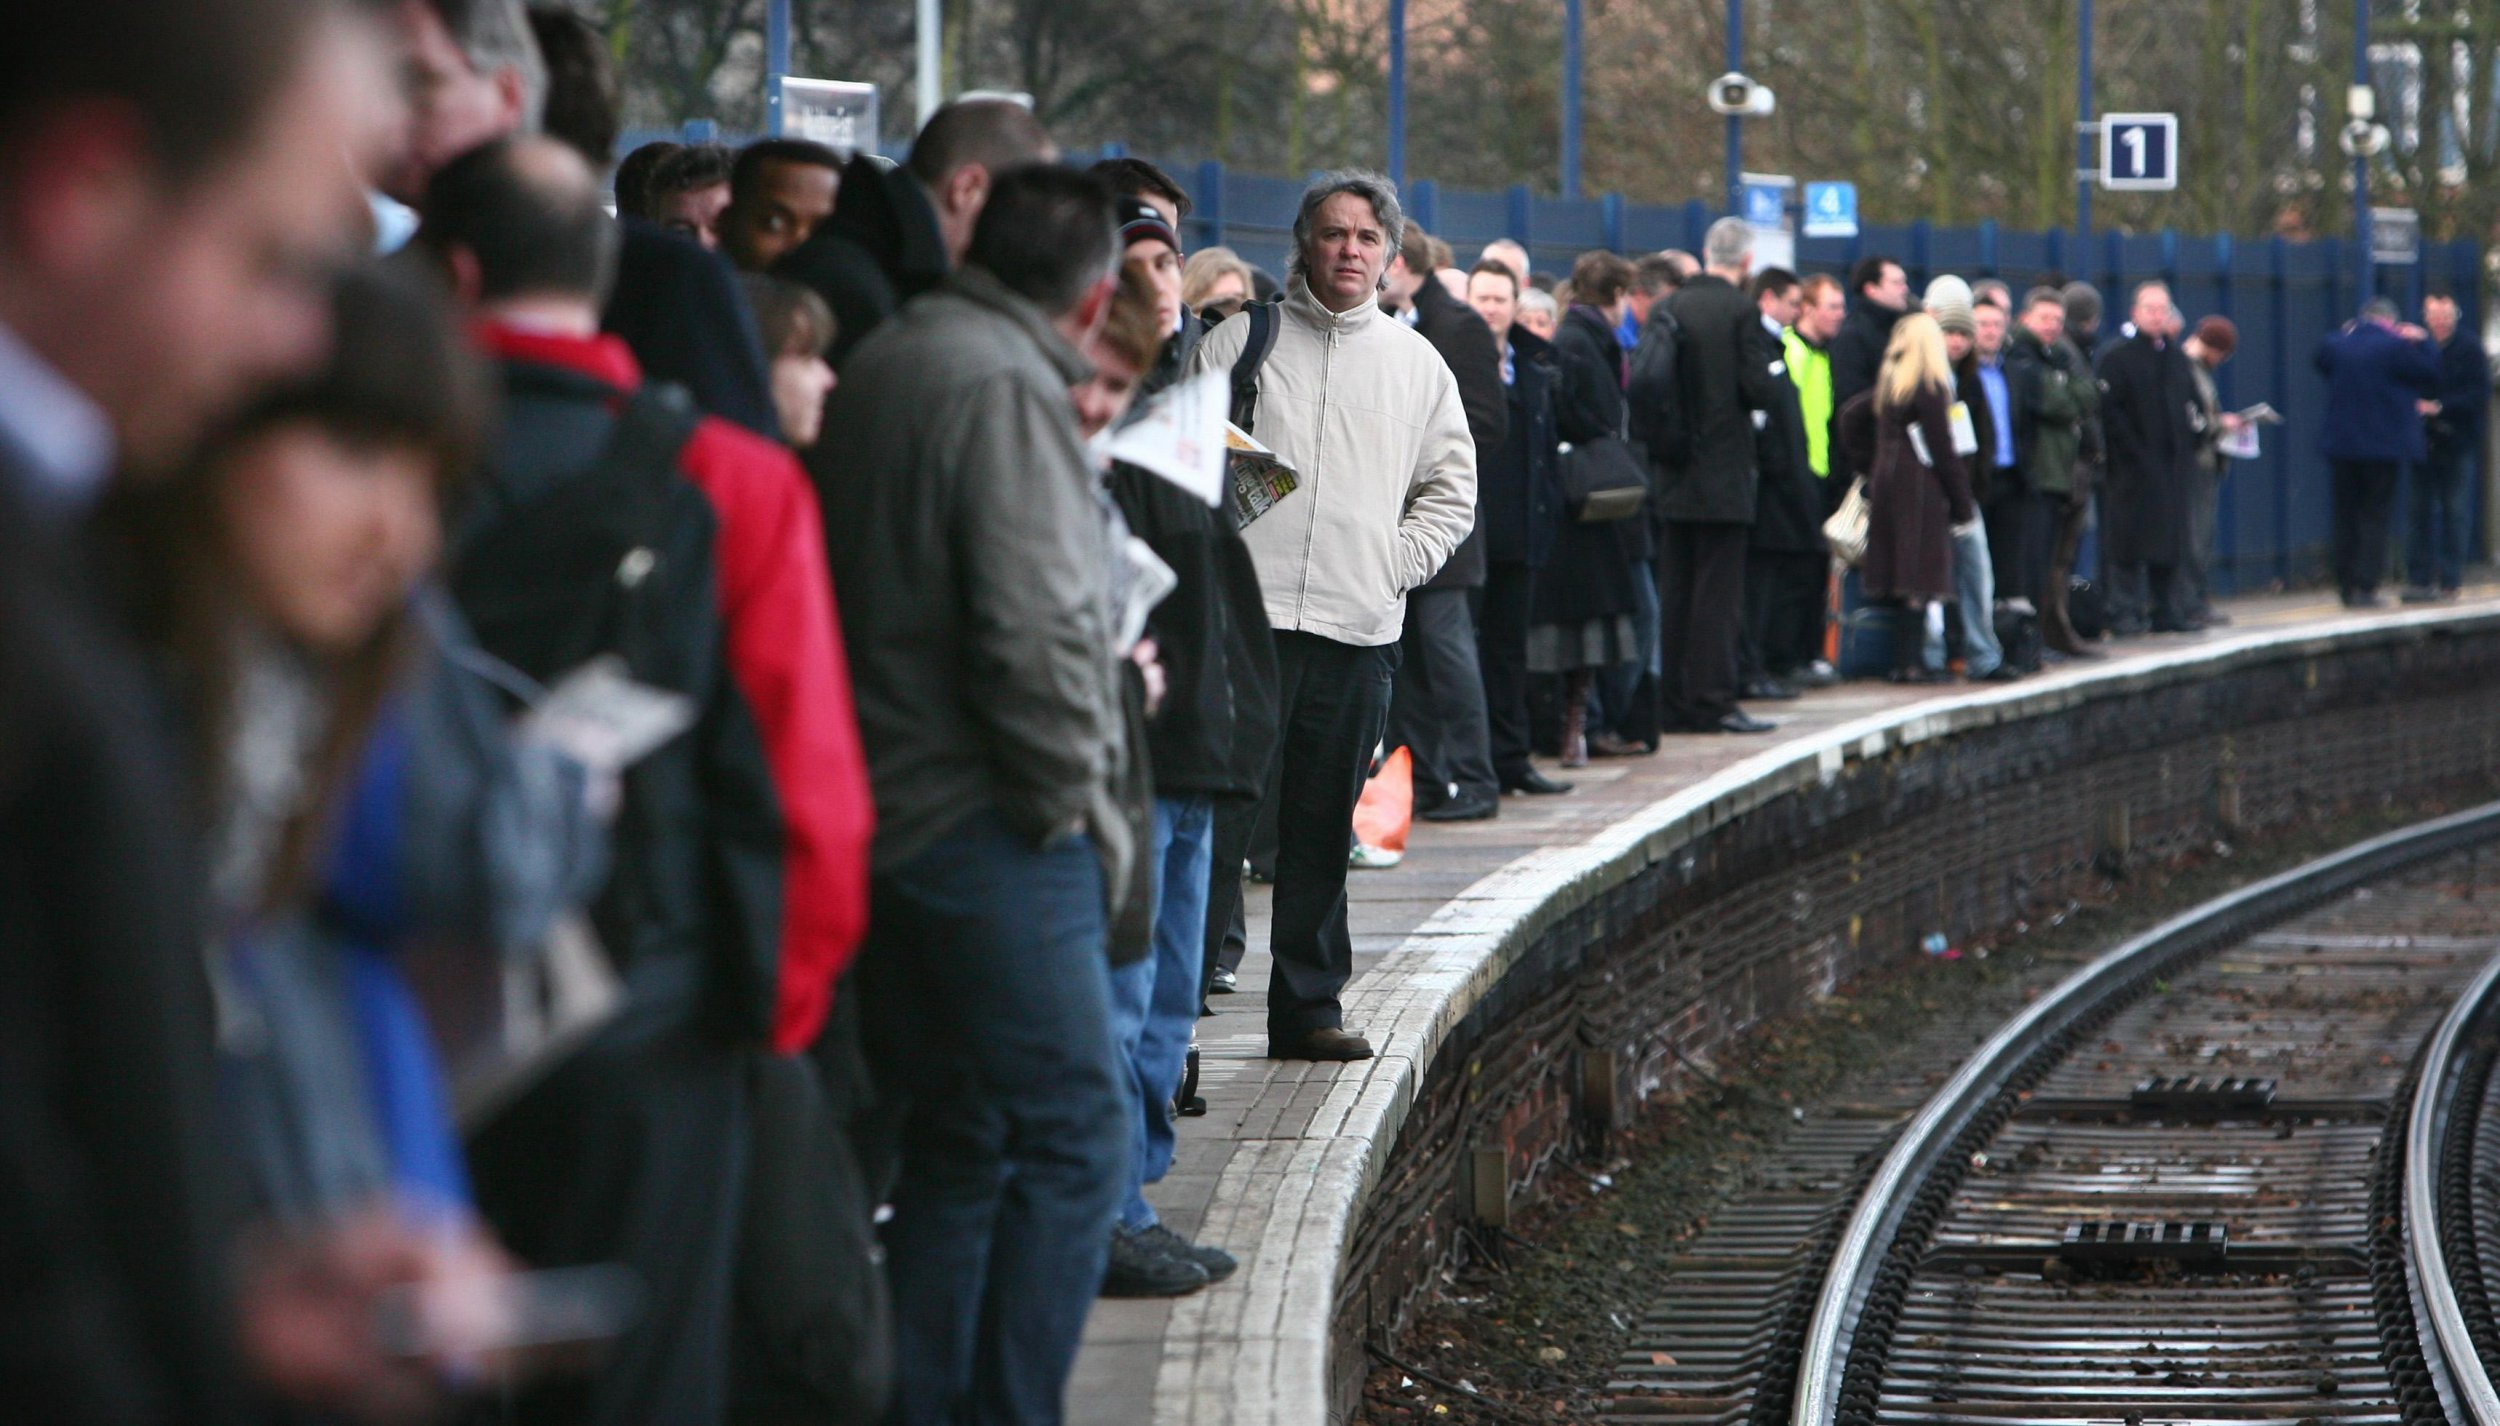 File photo dated 05/03/09 of commuters waiting on a platform as more than one in seven trains were late in the 12 months to the end of September, new figures show. PRESS ASSOCIATION Photo. Issue date: Thursday December 6, 2018. Just 85.9% of trains met the rail industry's punctuality target, the Office of Rail and Road said. See PA story RAIL Punctuality. Photo credit should read: Gareth Fuller/PA Wire